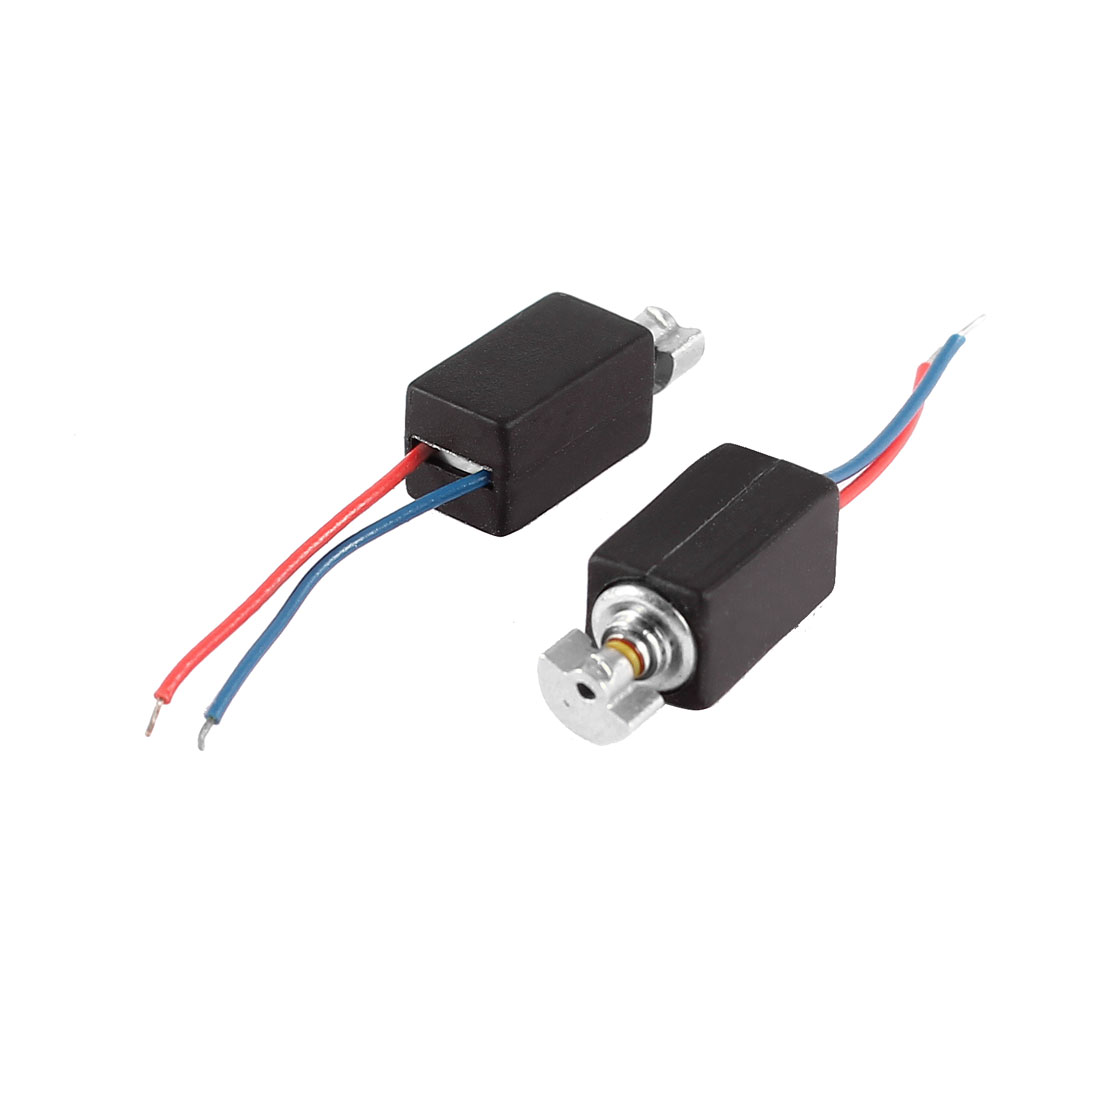 4-6mm-x-4-8mm-x-8-2mm-2-Wire-DC-3V-2000RPM-Mini-Micro-Vibration-Motor-2-Pcs